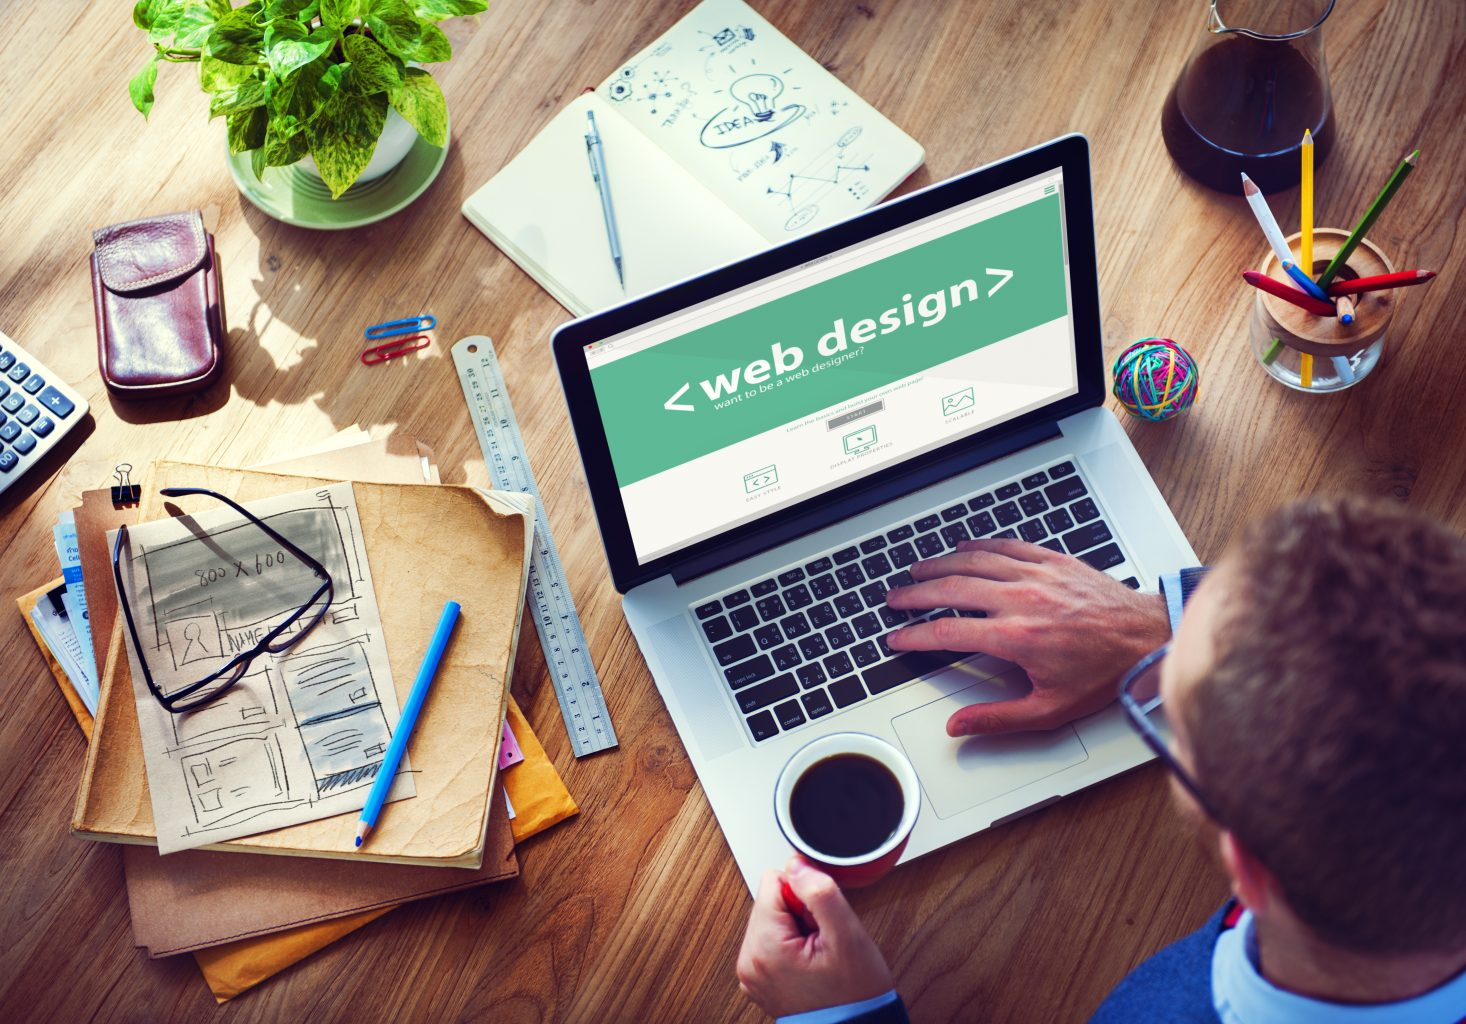 Top 7 Dos and Donts of Website Design and Creation